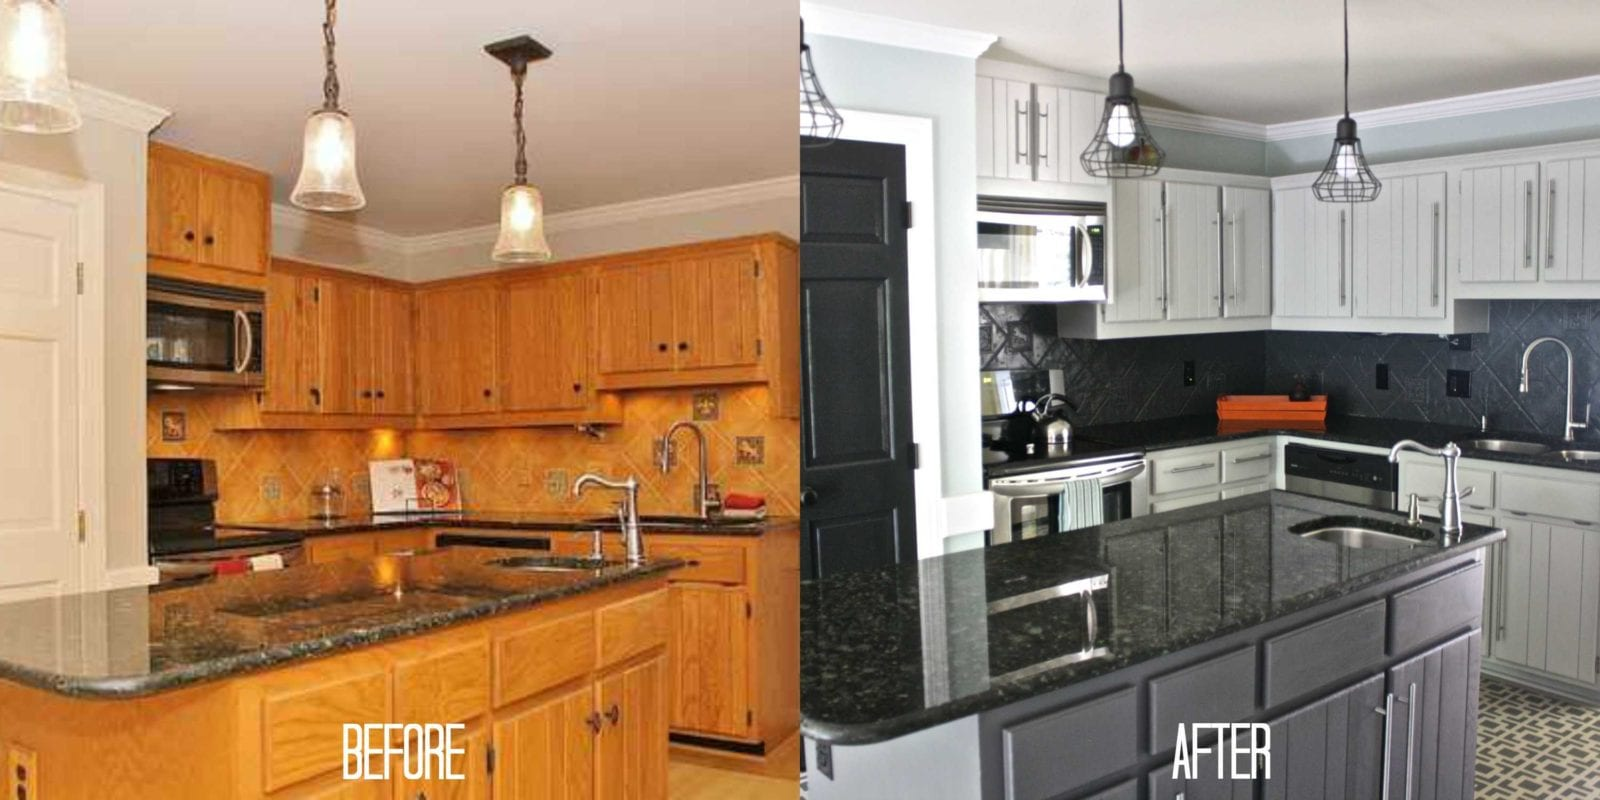 Cute Budget kitchen remodel by Designer Trapped in a Lawyer us Body Totally transformed with